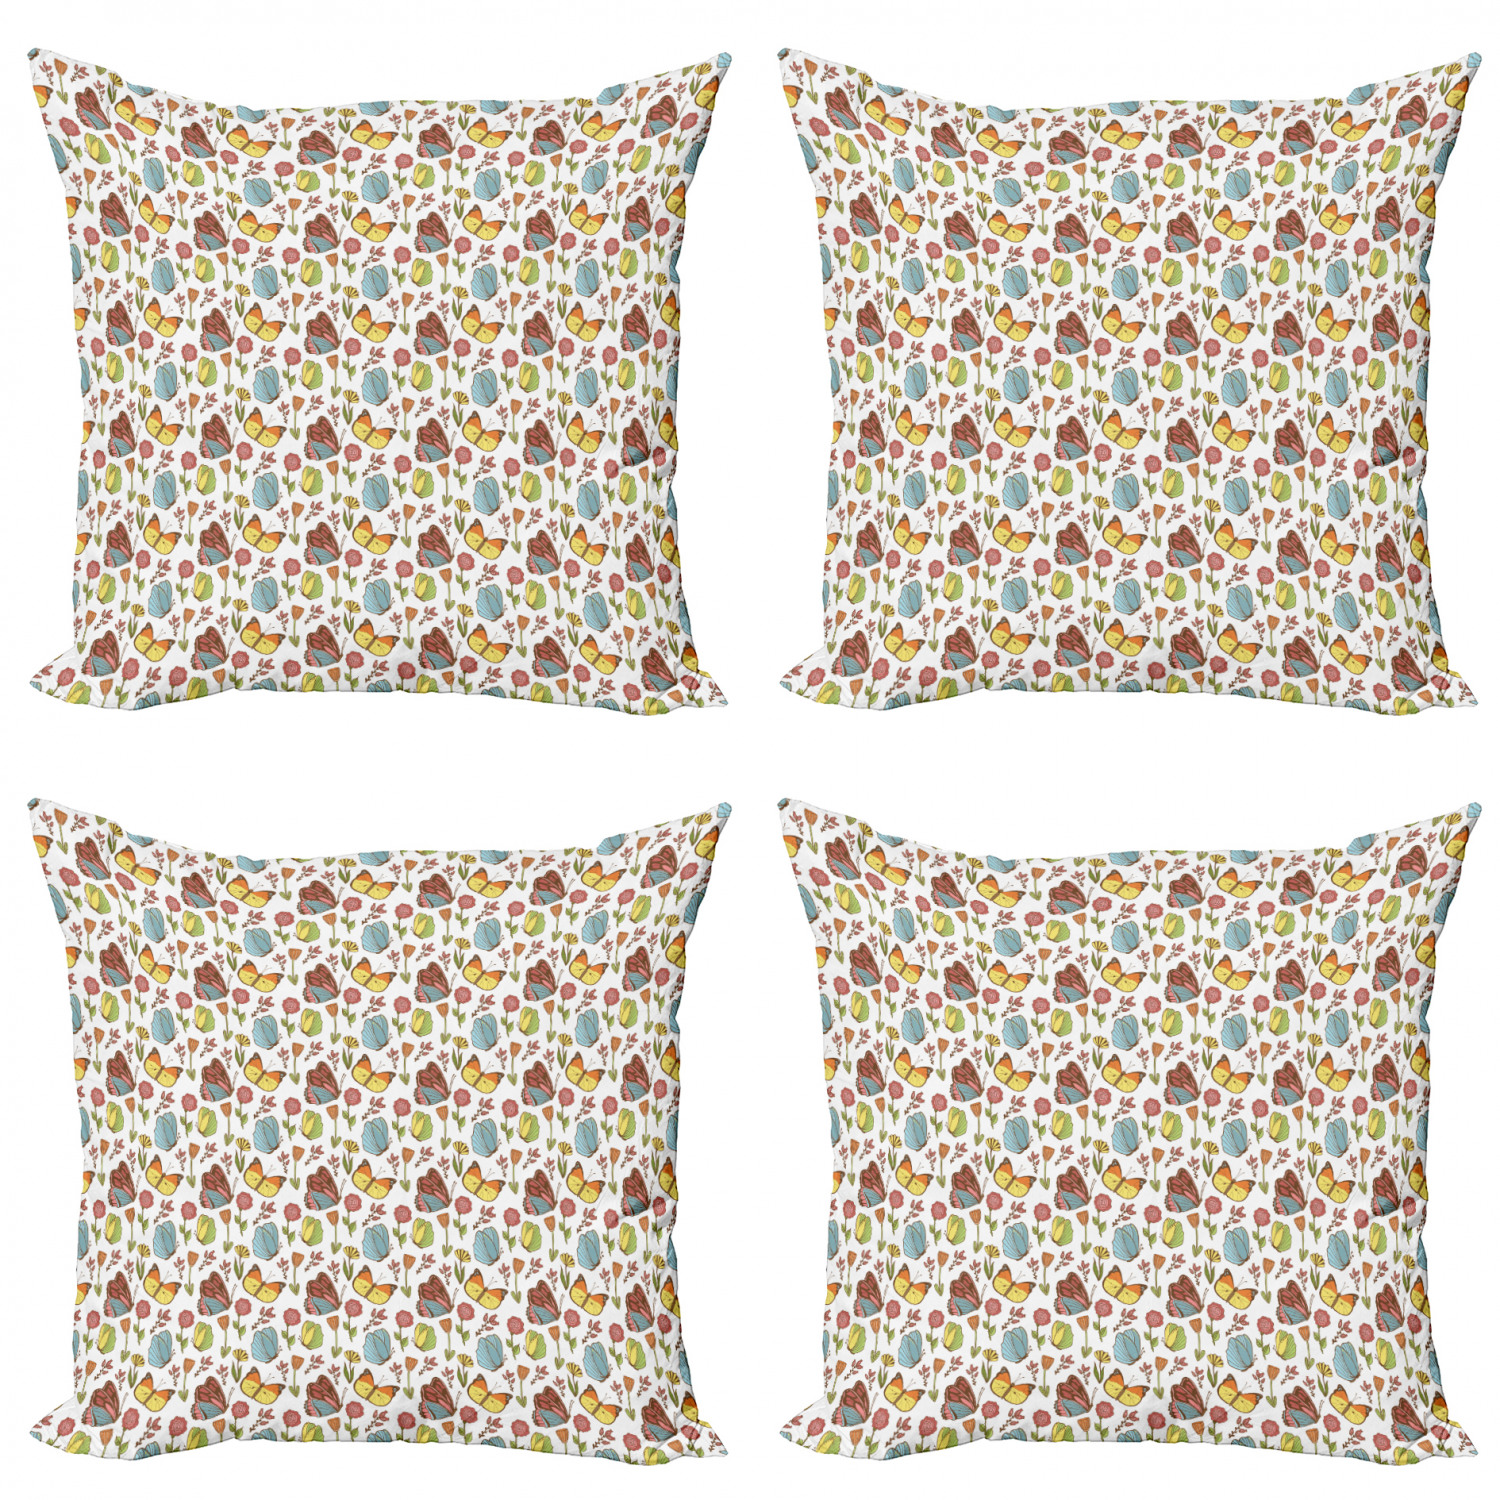 Ambesonne-Floral-Drawings-Cushion-Cover-Set-of-4-for-Couch-and-Bed-in-4-Sizes thumbnail 54